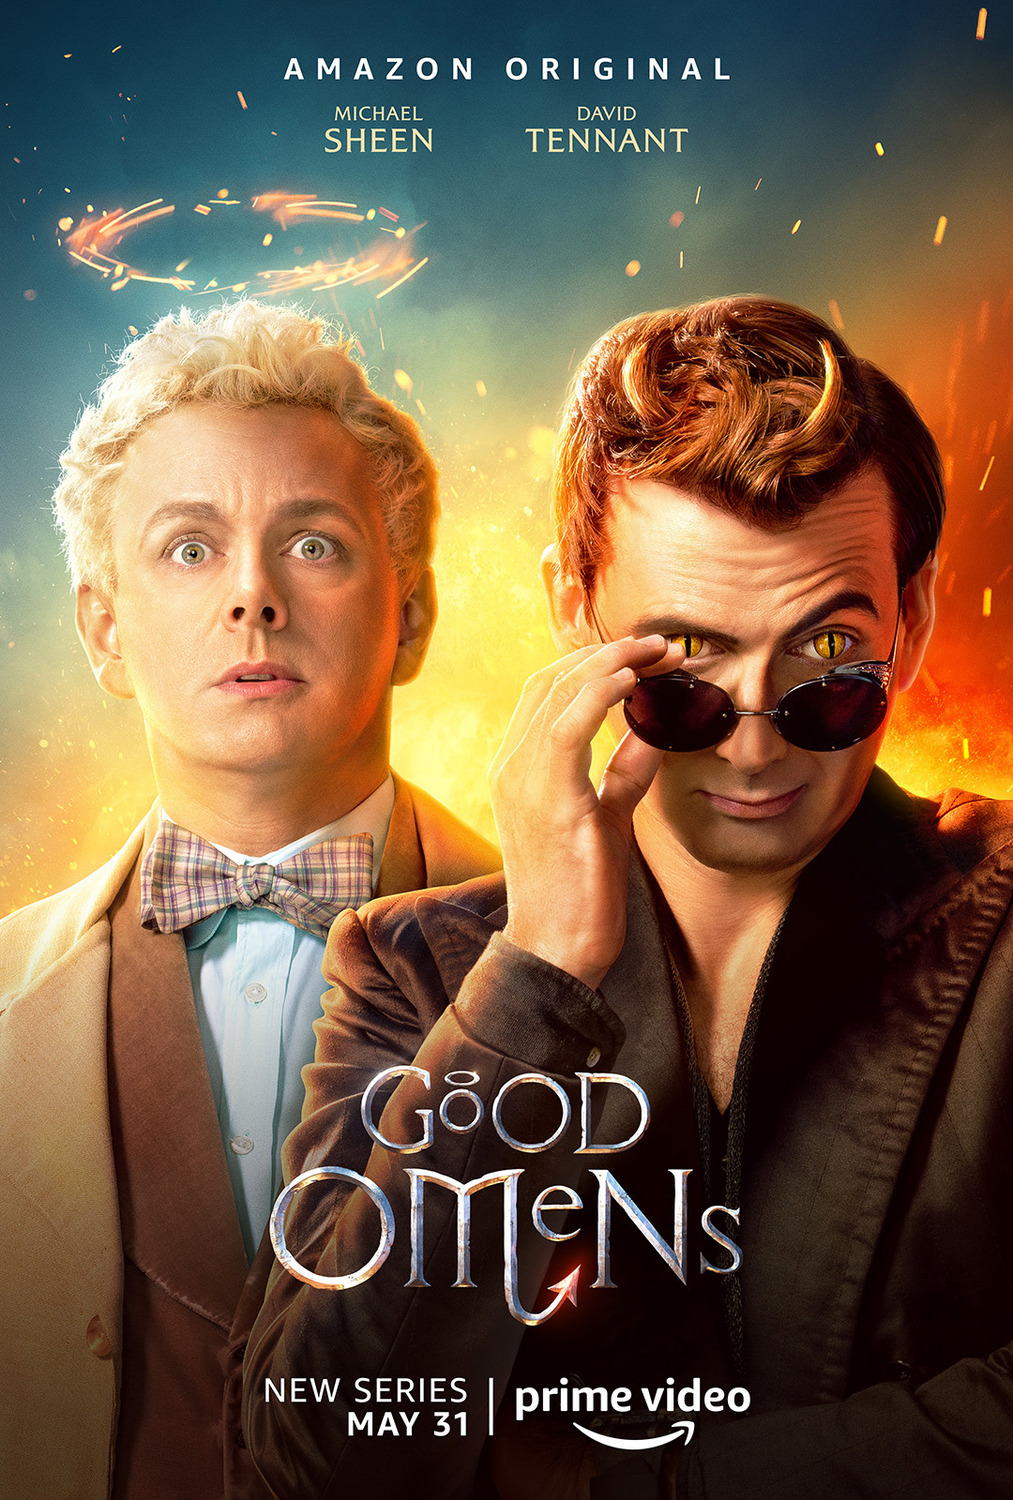 Good Omens review: Welcome to the end times